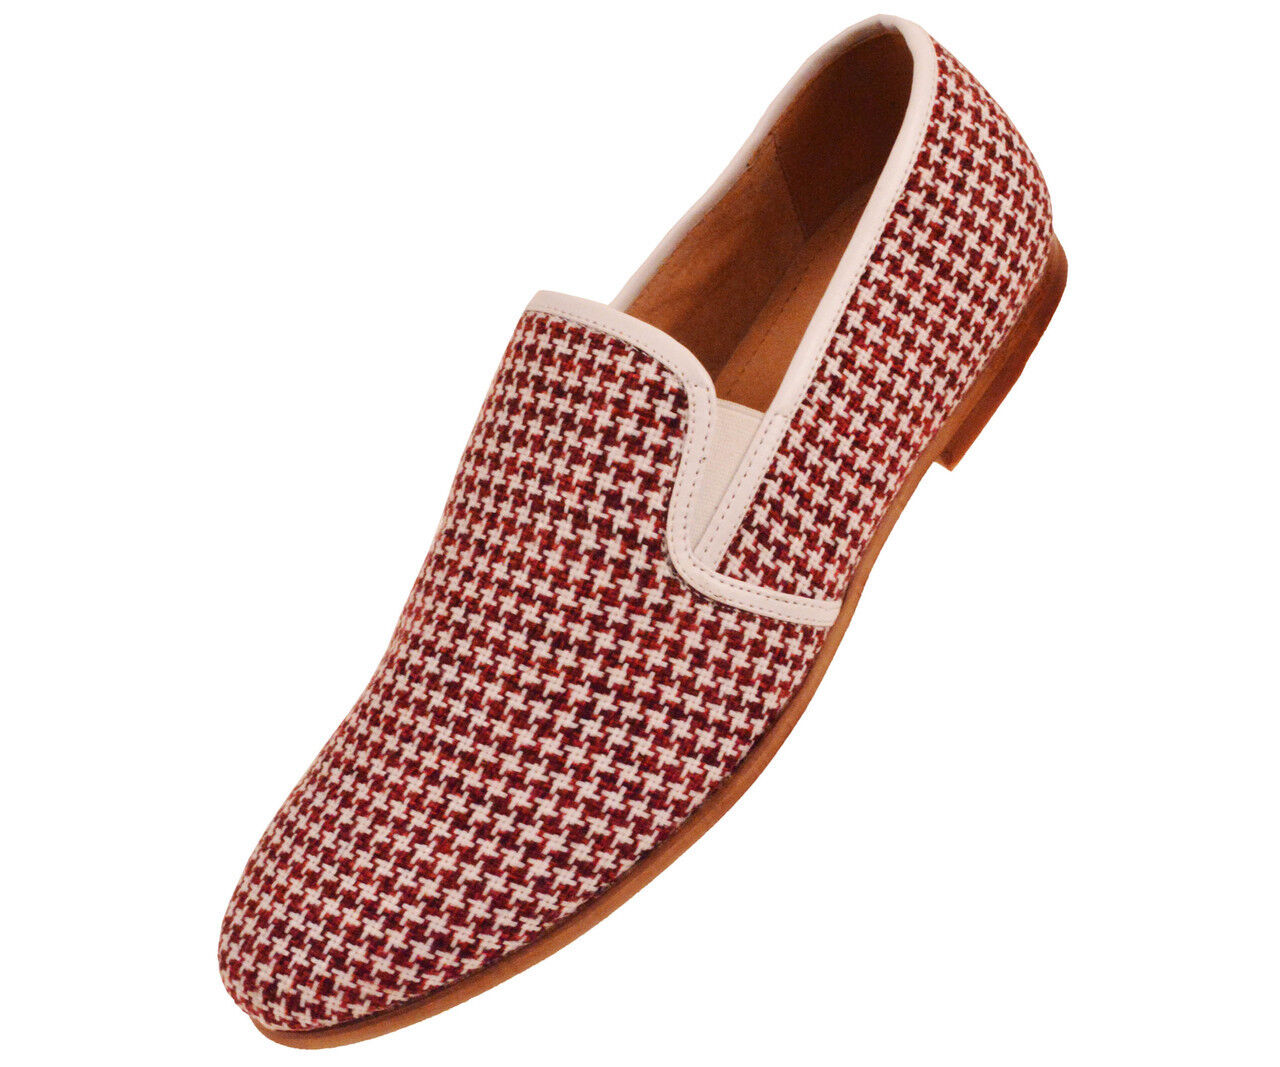 New Mens Red & White Houndstooth Knit Slip On Dress Casual Loafer Shoe SUMMER